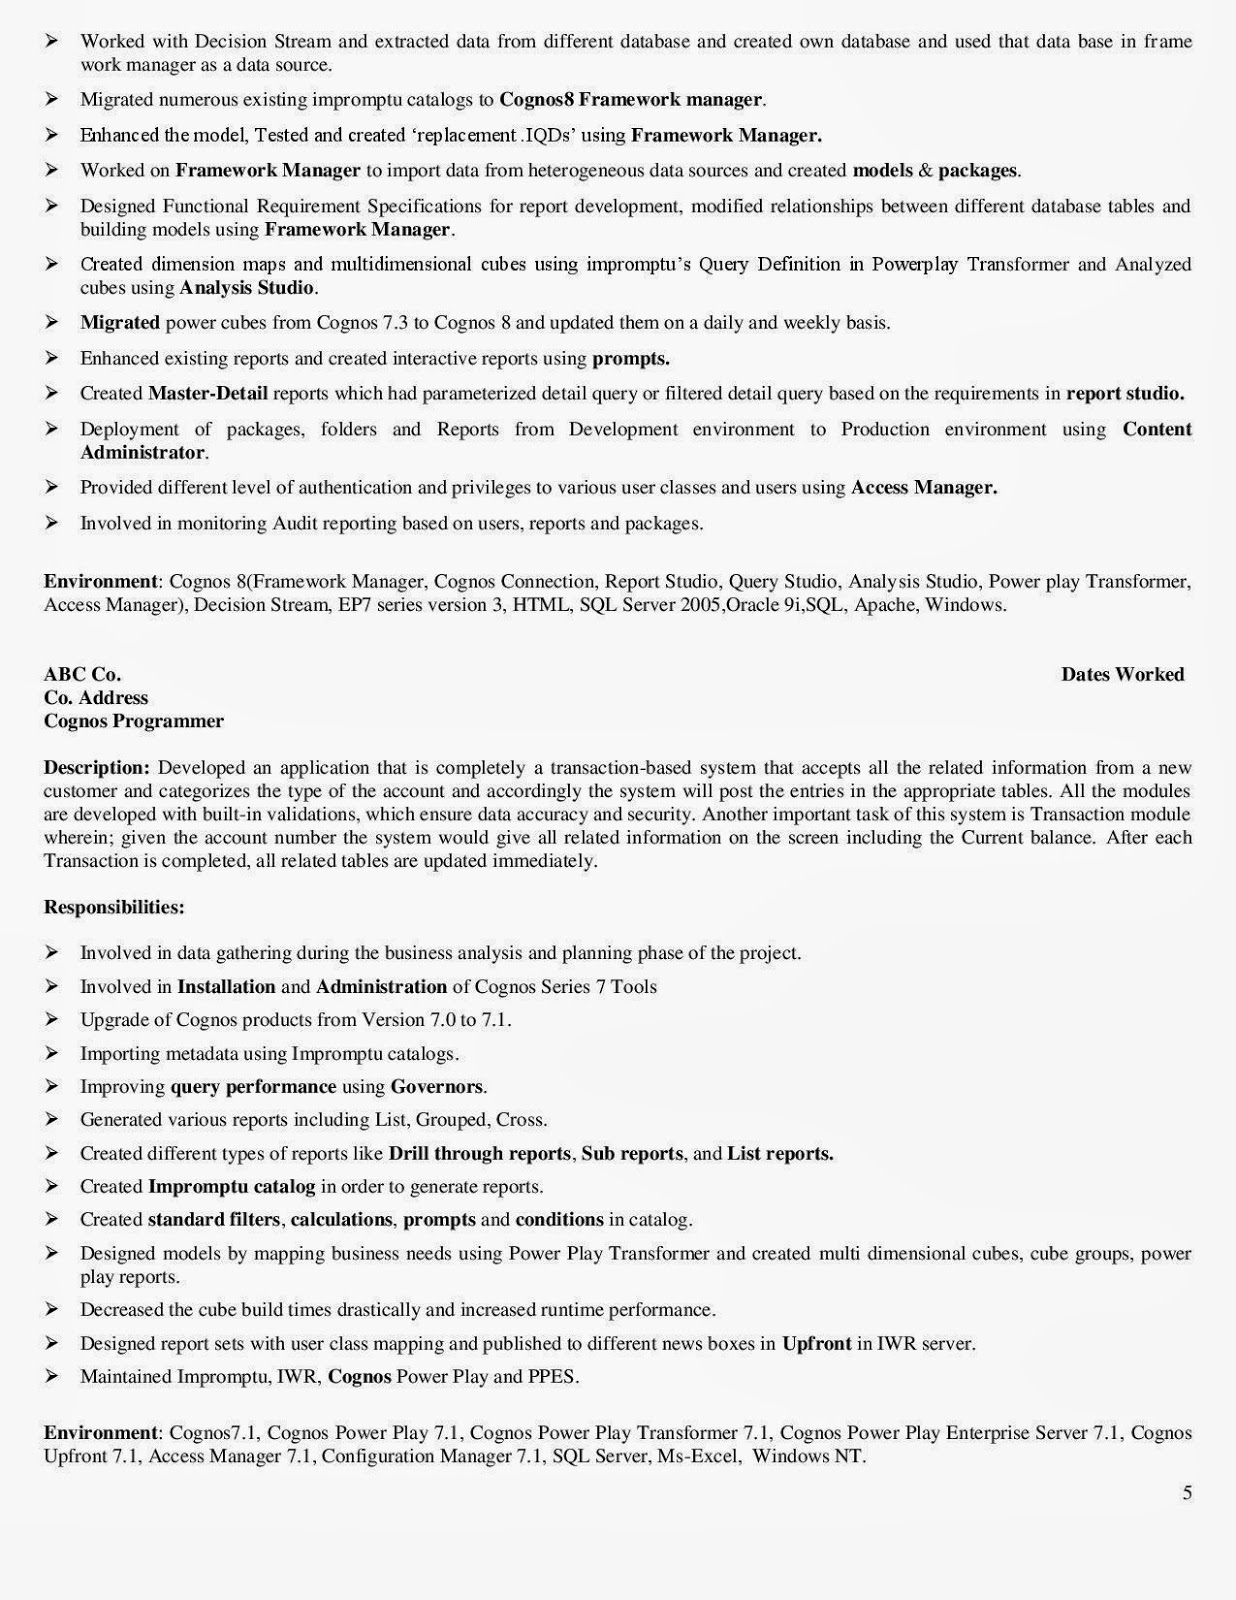 qa analyst resume india peoplesoft resume sample office